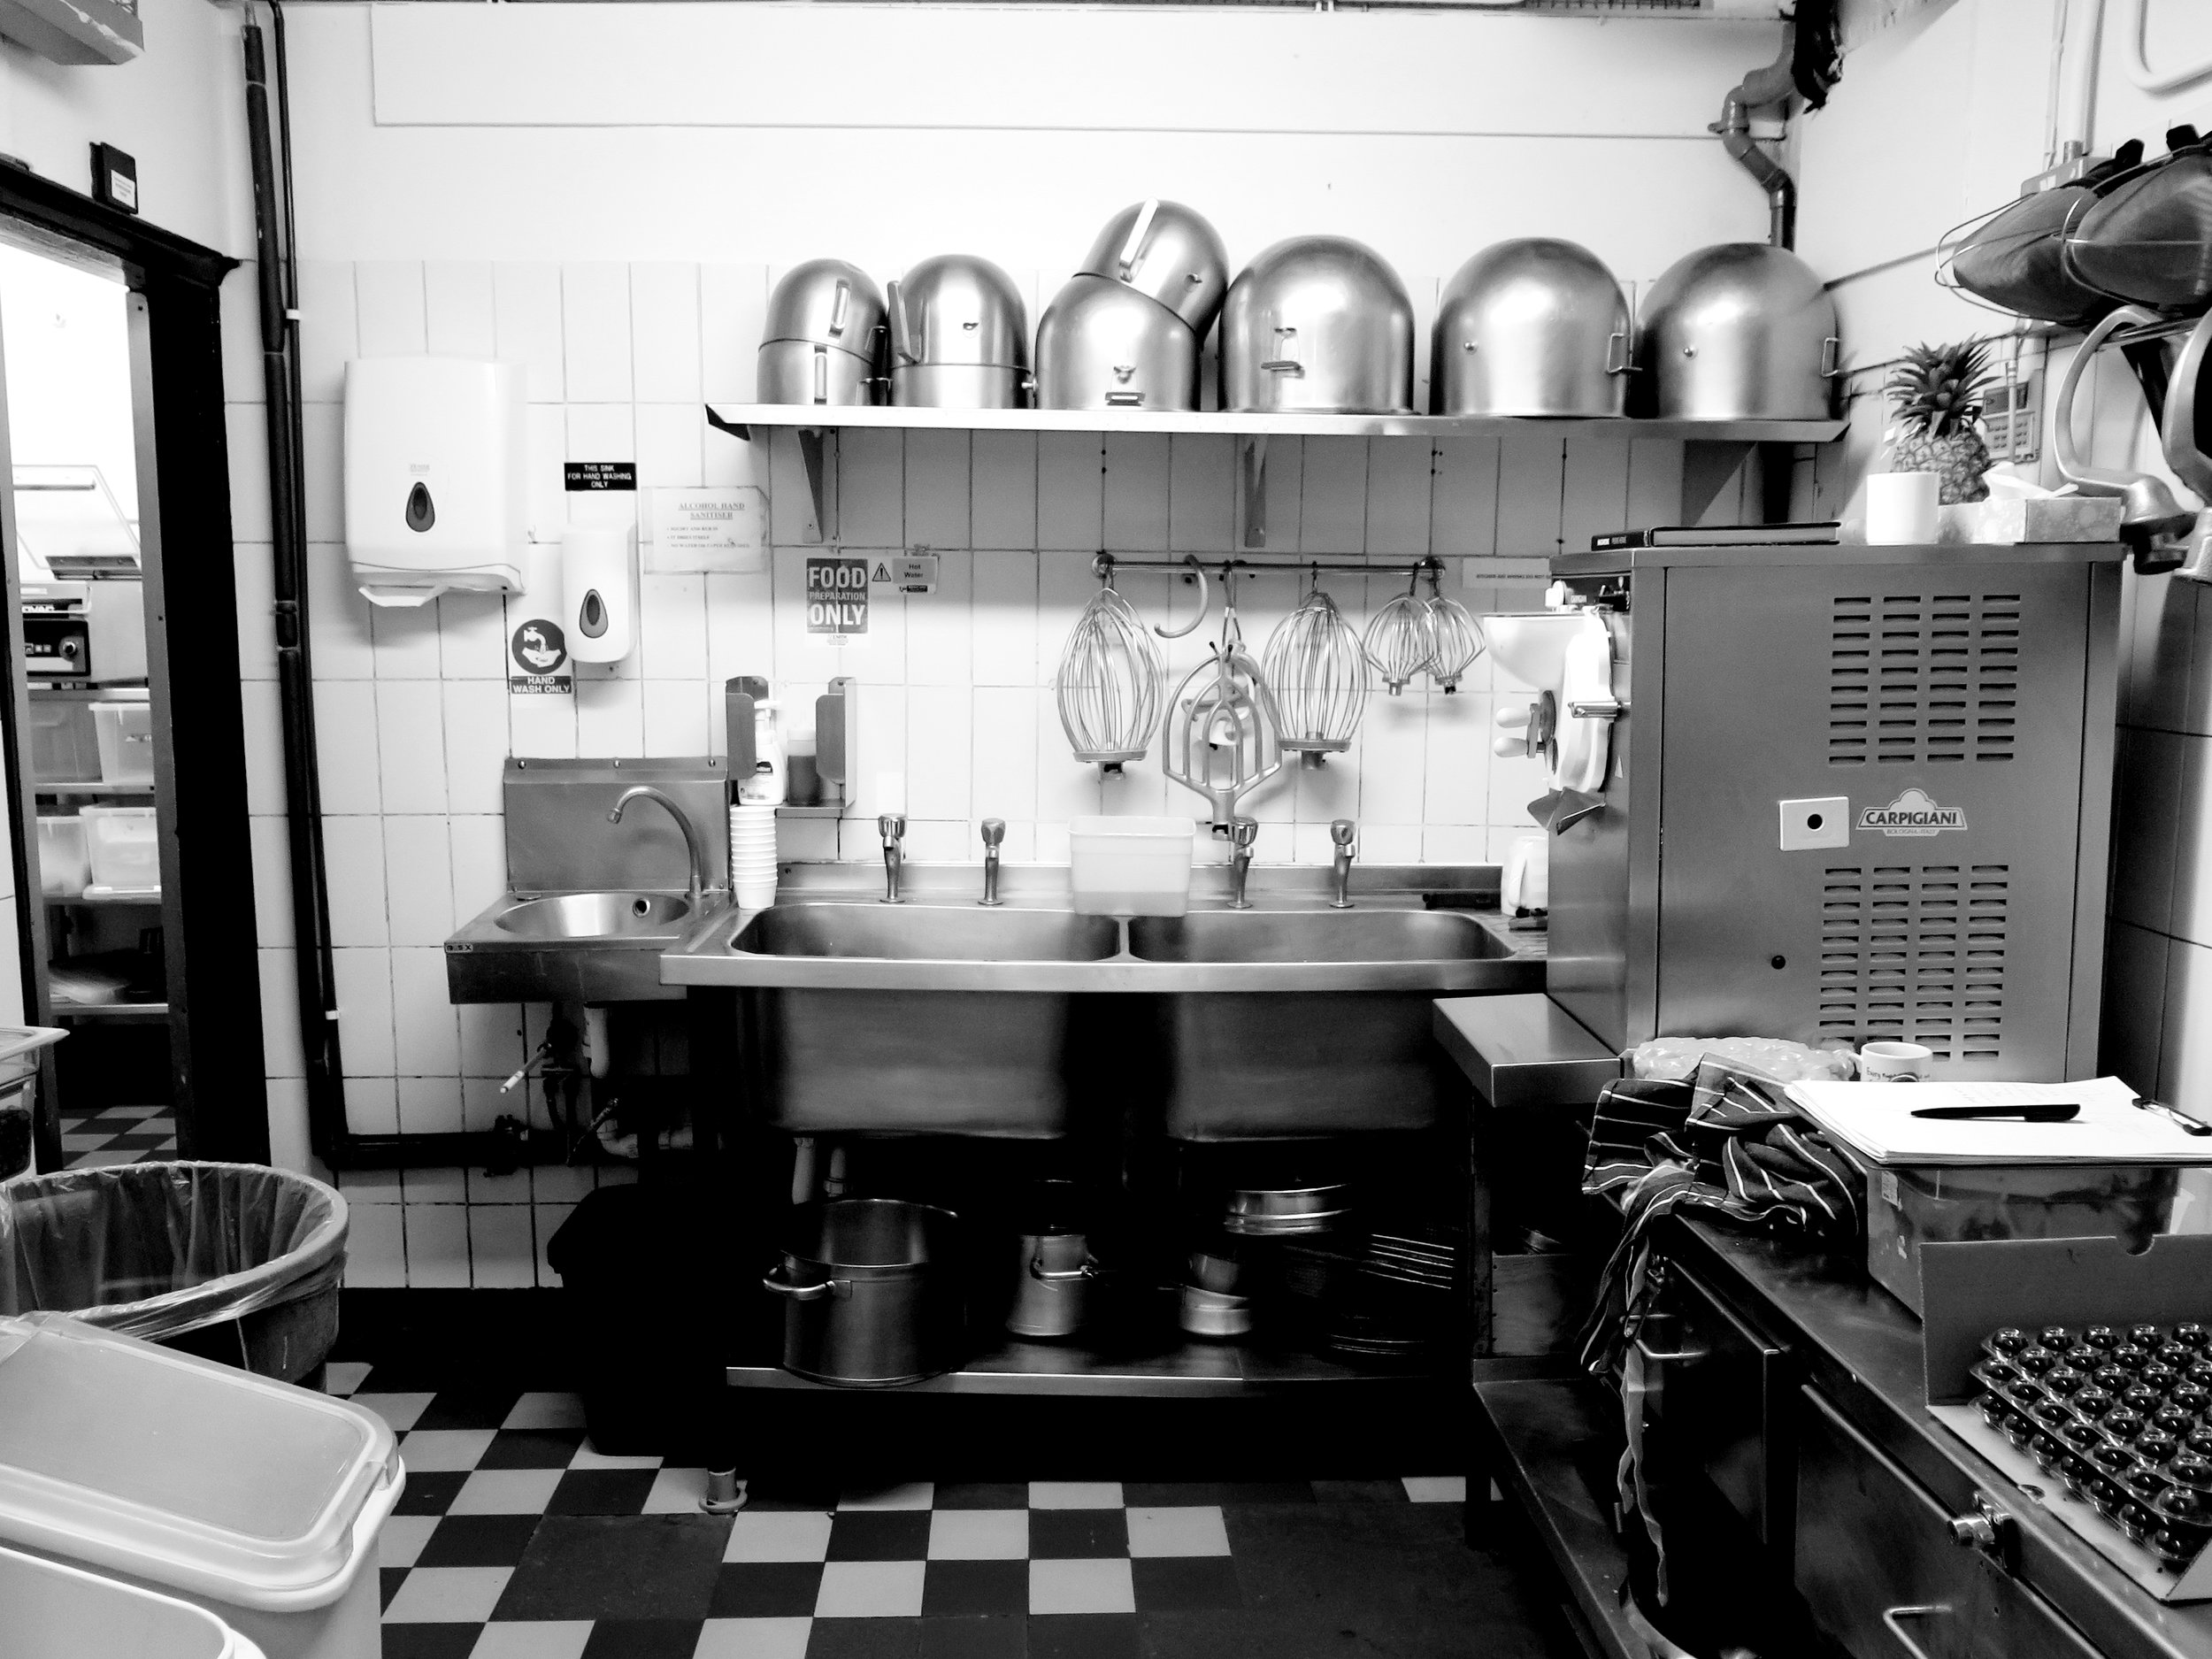 On the other side of the door : inside the kitchens of Le Caprice (Part 1)